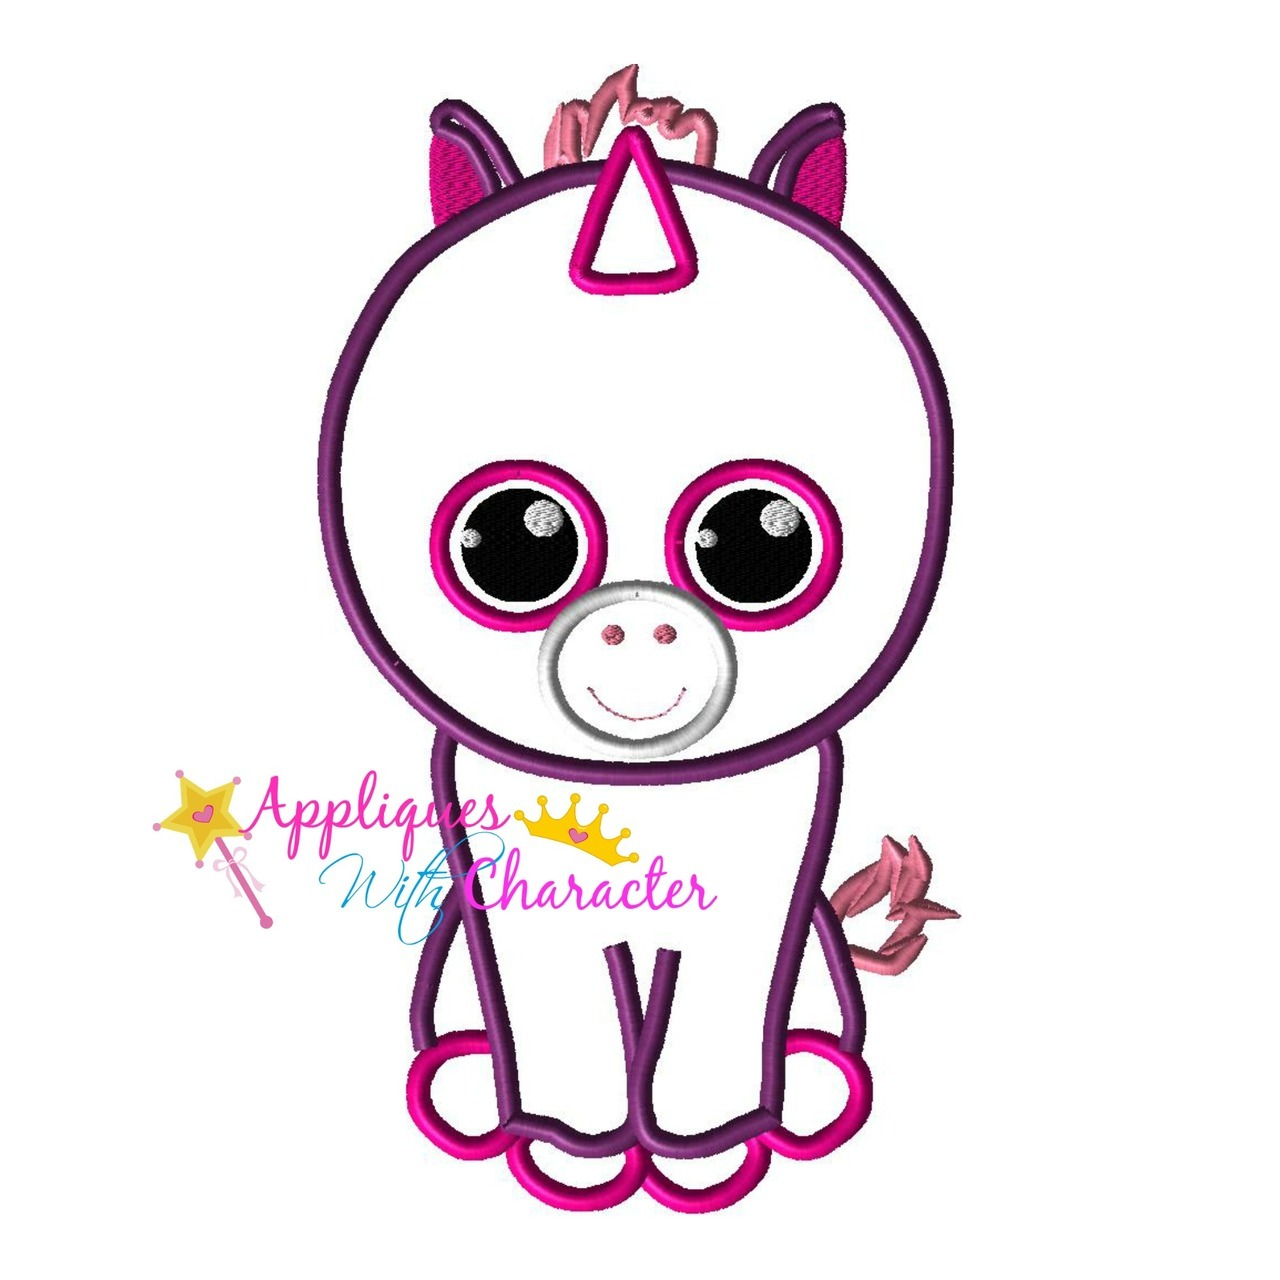 1280x1280 Beanie Boo Unicorn Applique Design By Appliques With Character